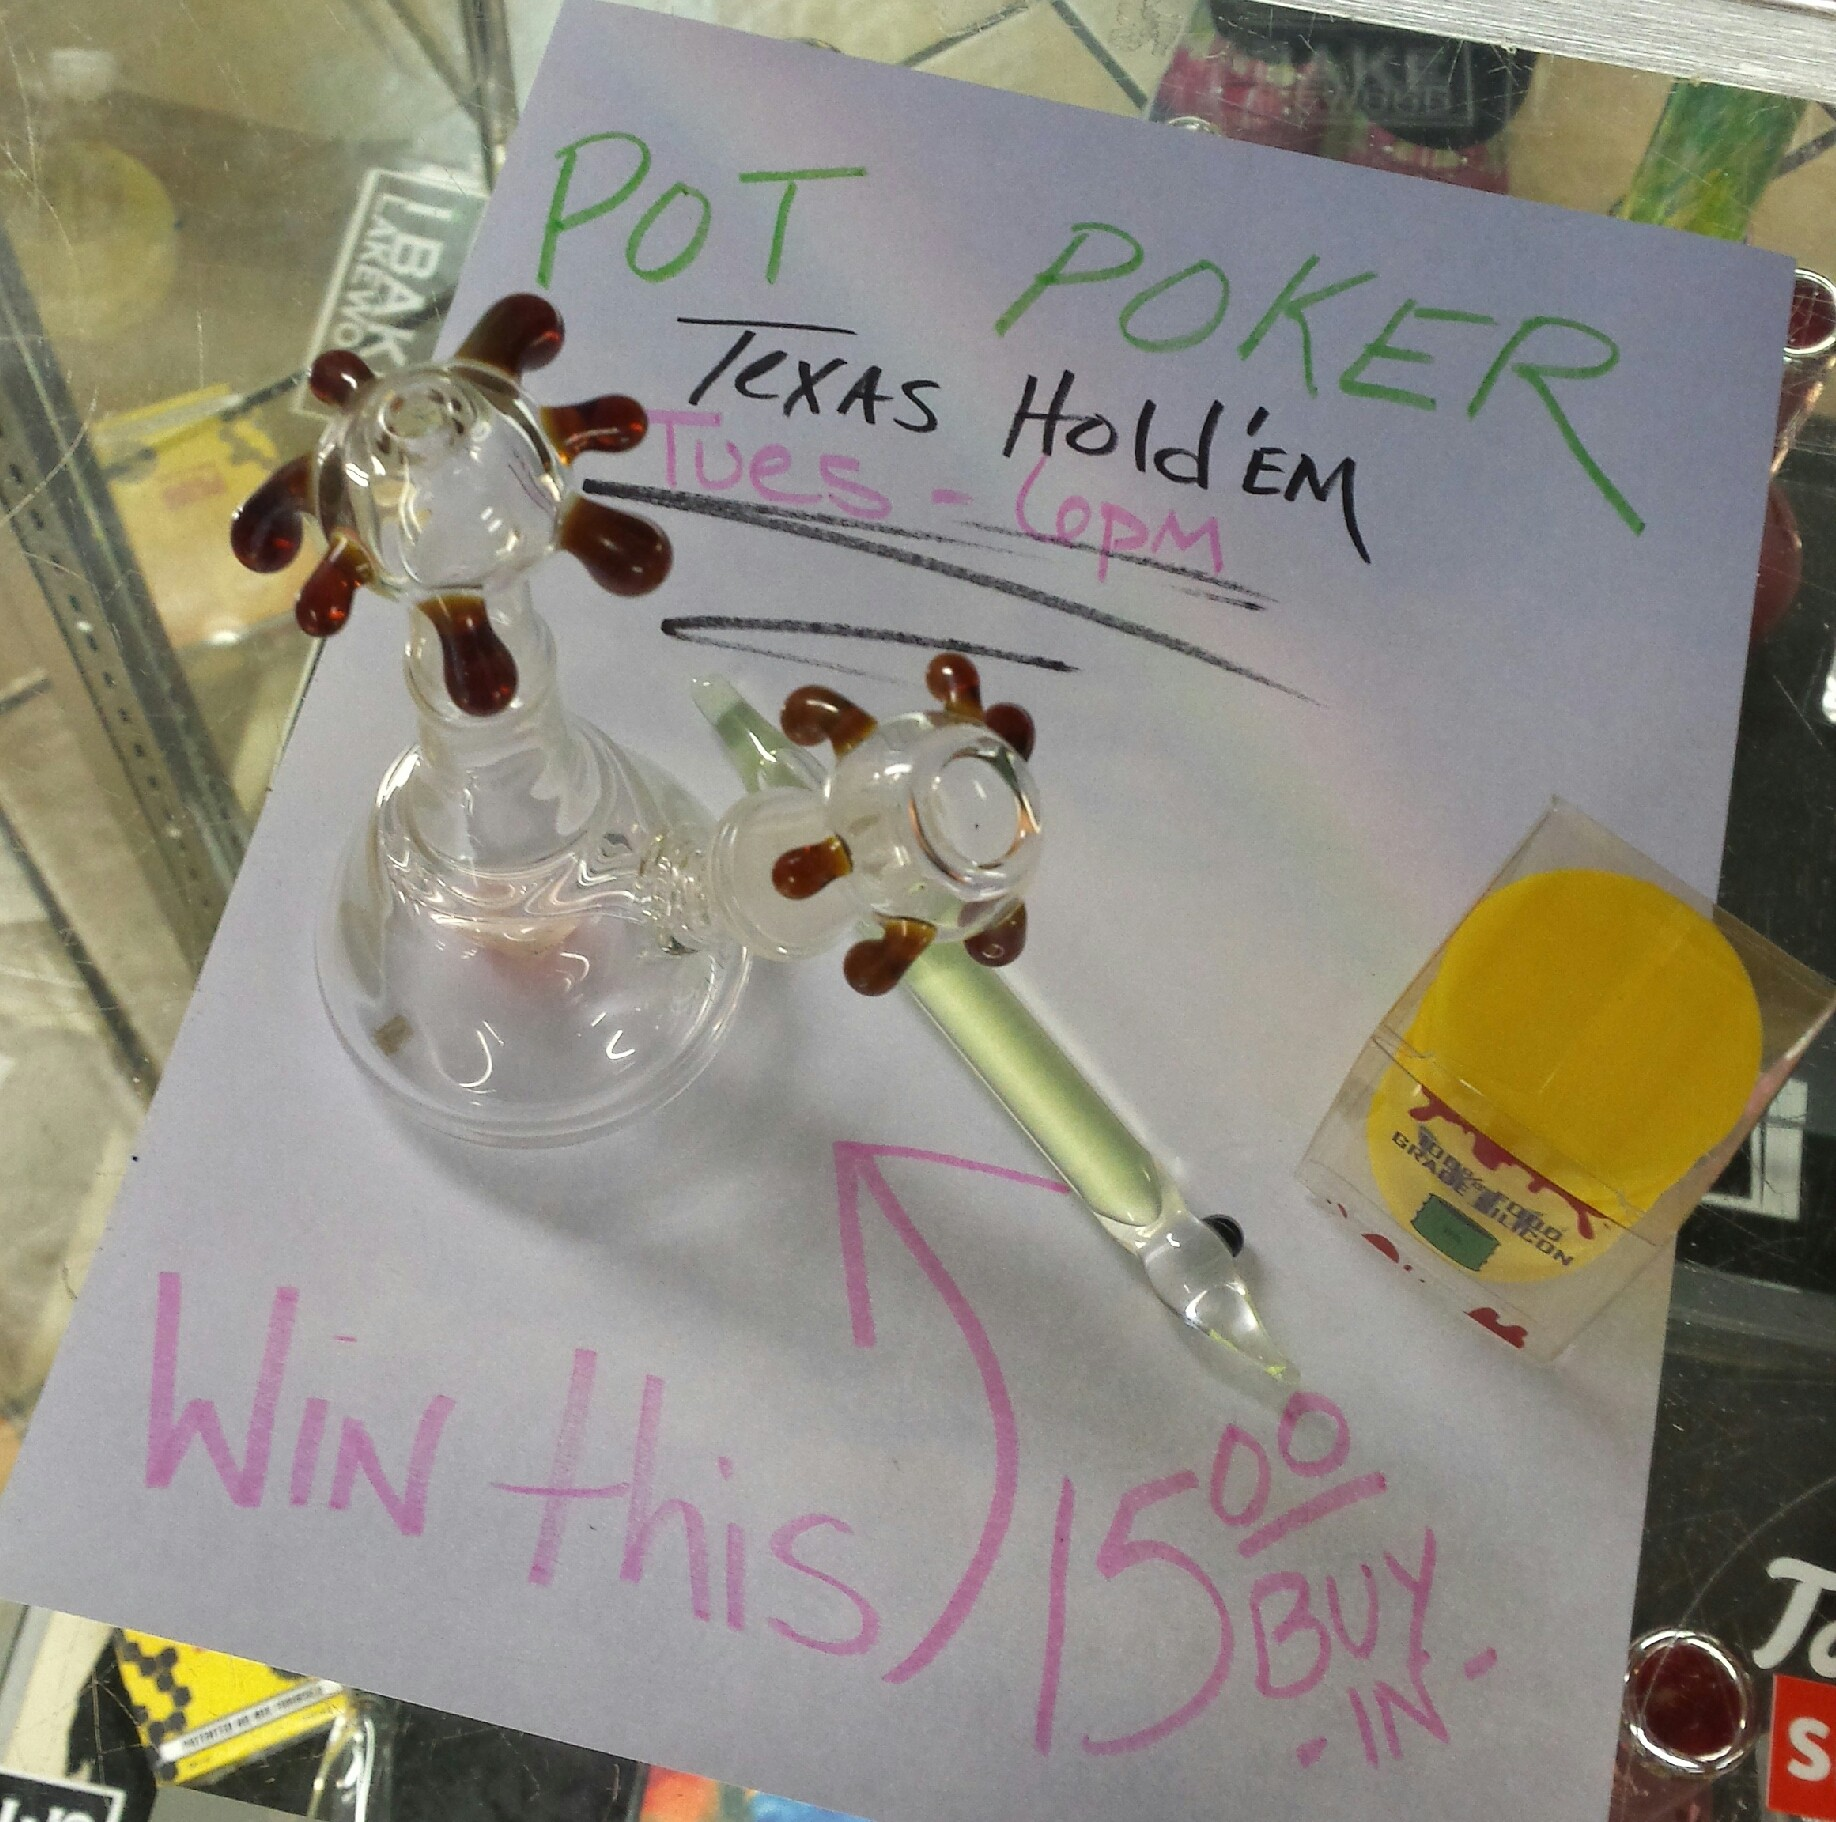 """Win this OIL set up! This Tues 6 p.m. (10/06) """"Pot Poker"""" Texas Hold'em 15.oo buy in. 6125 Washington St. Denver, Colorado Www.iBakeDenver.com"""